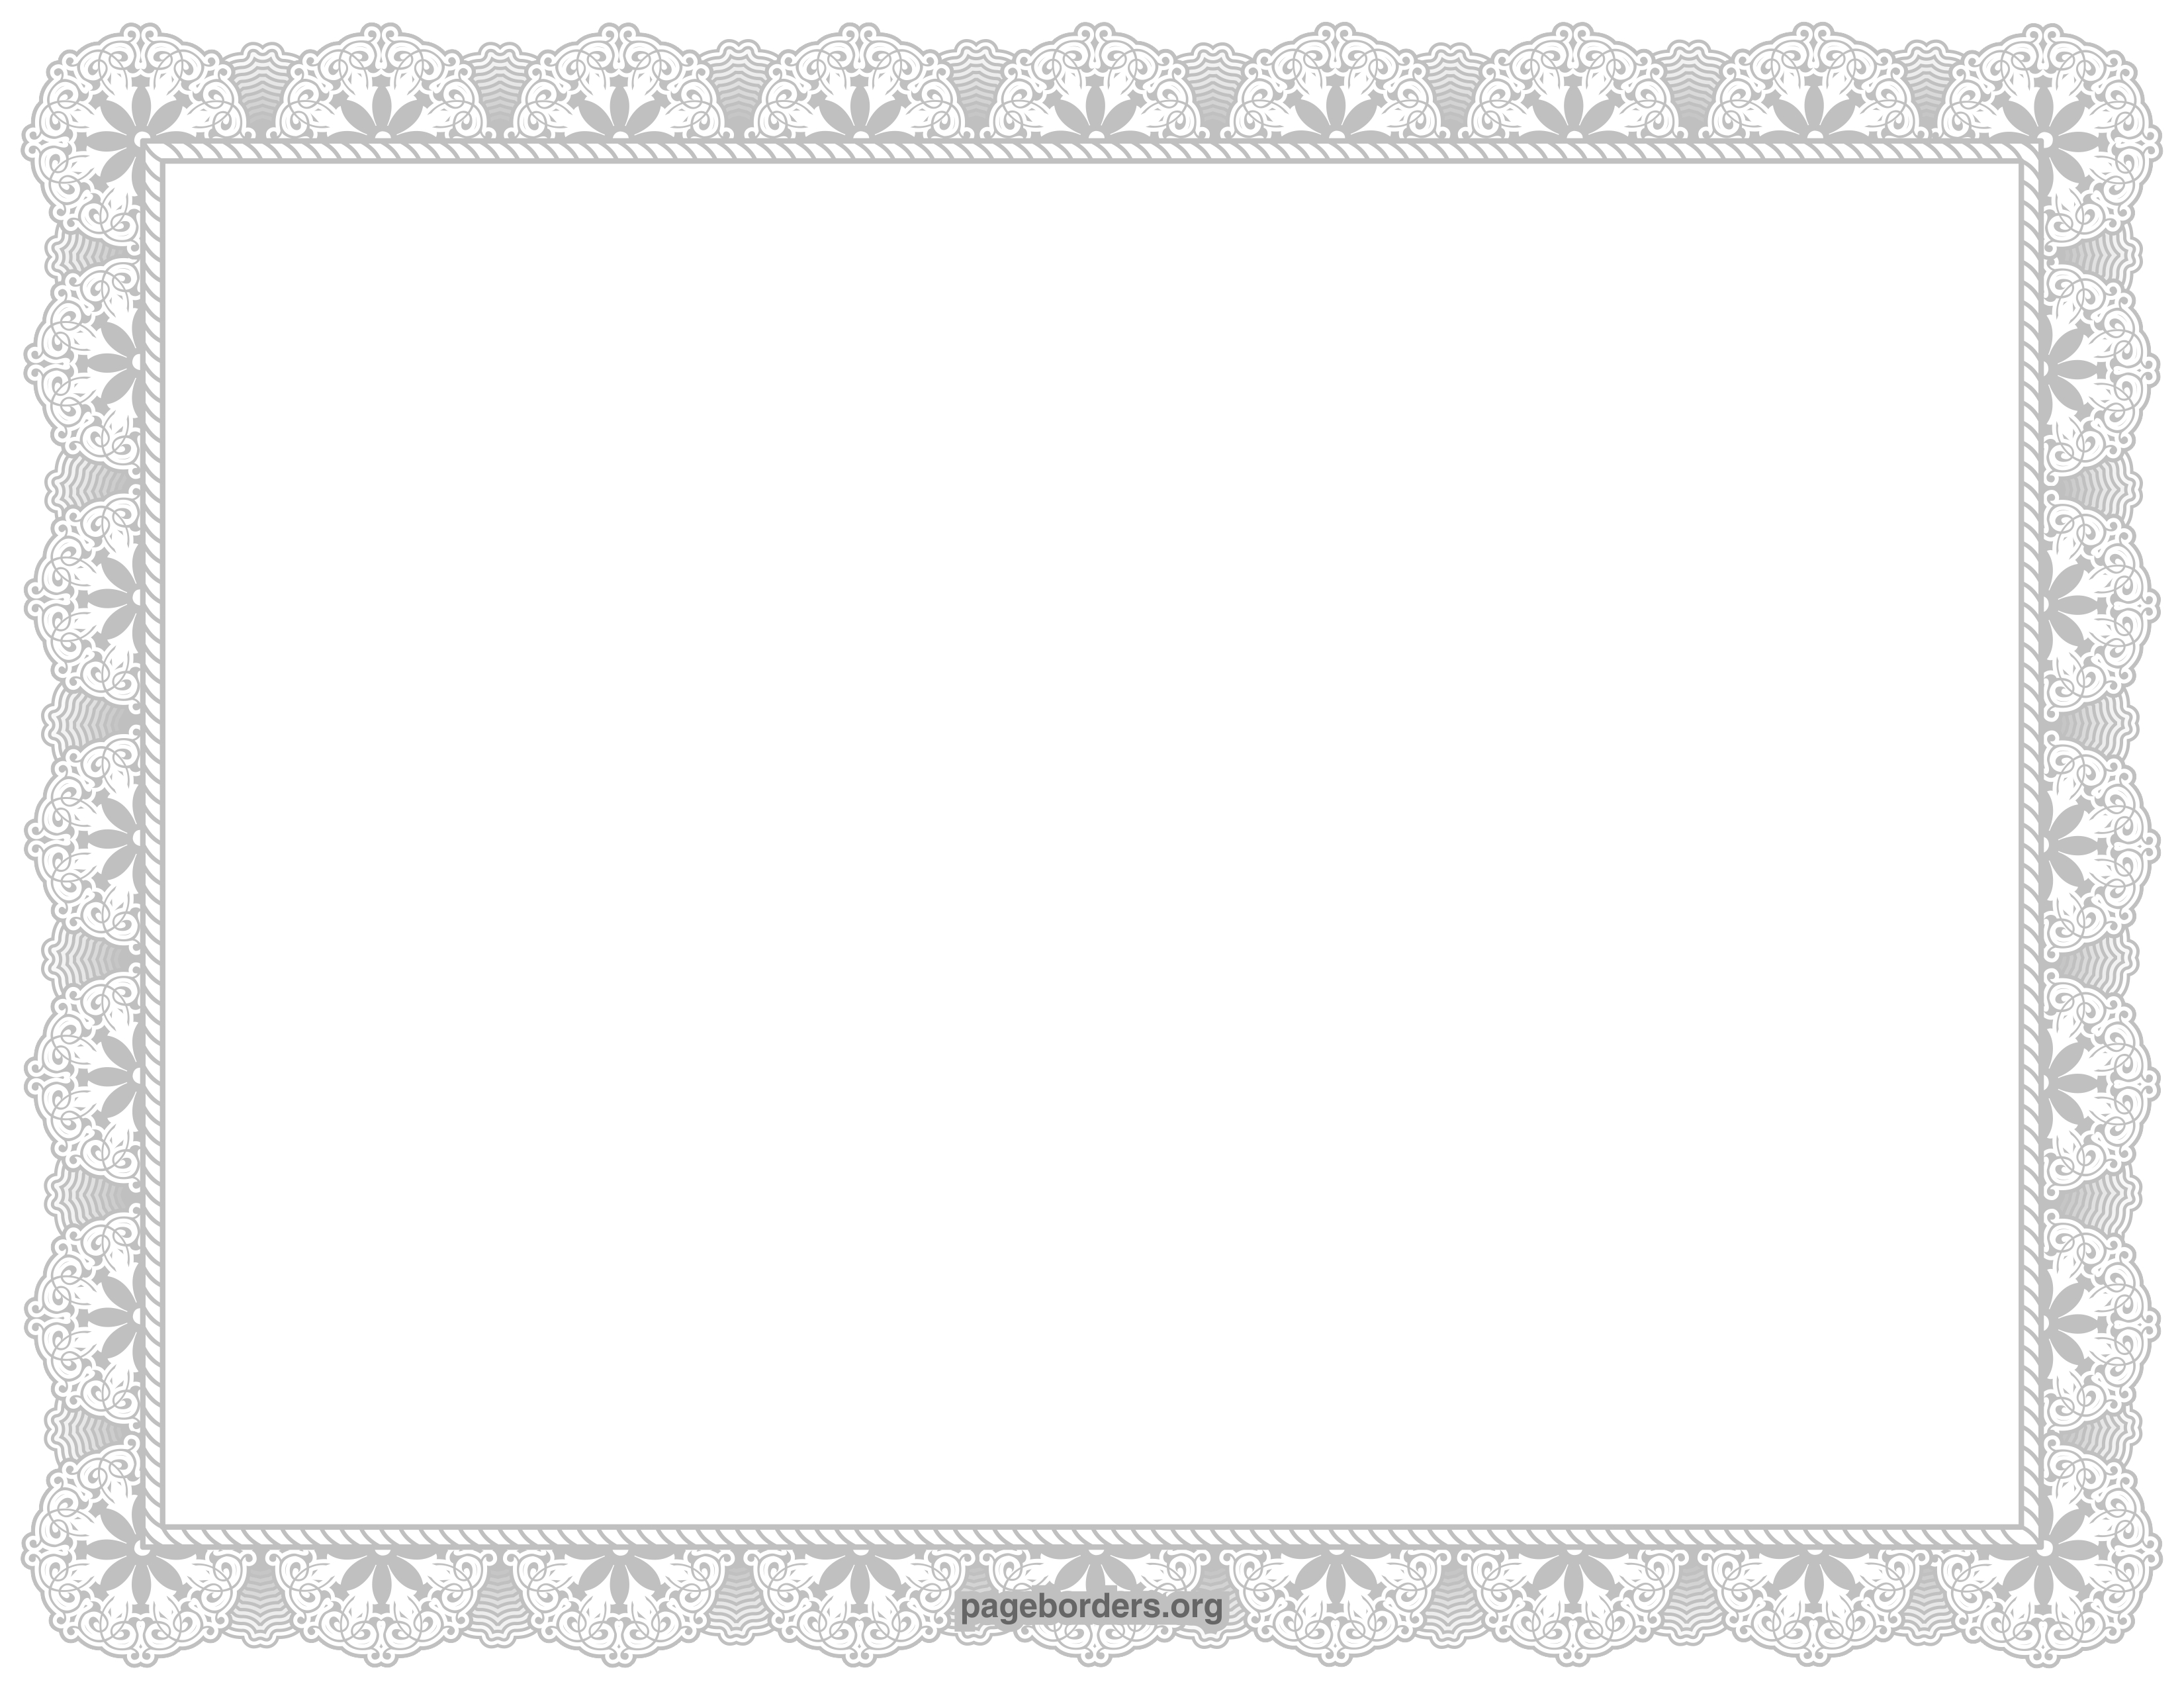 Clipart certificate borders svg free stock Free Certificate Borders, Download Free Clip Art, Free Clip Art on ... svg free stock